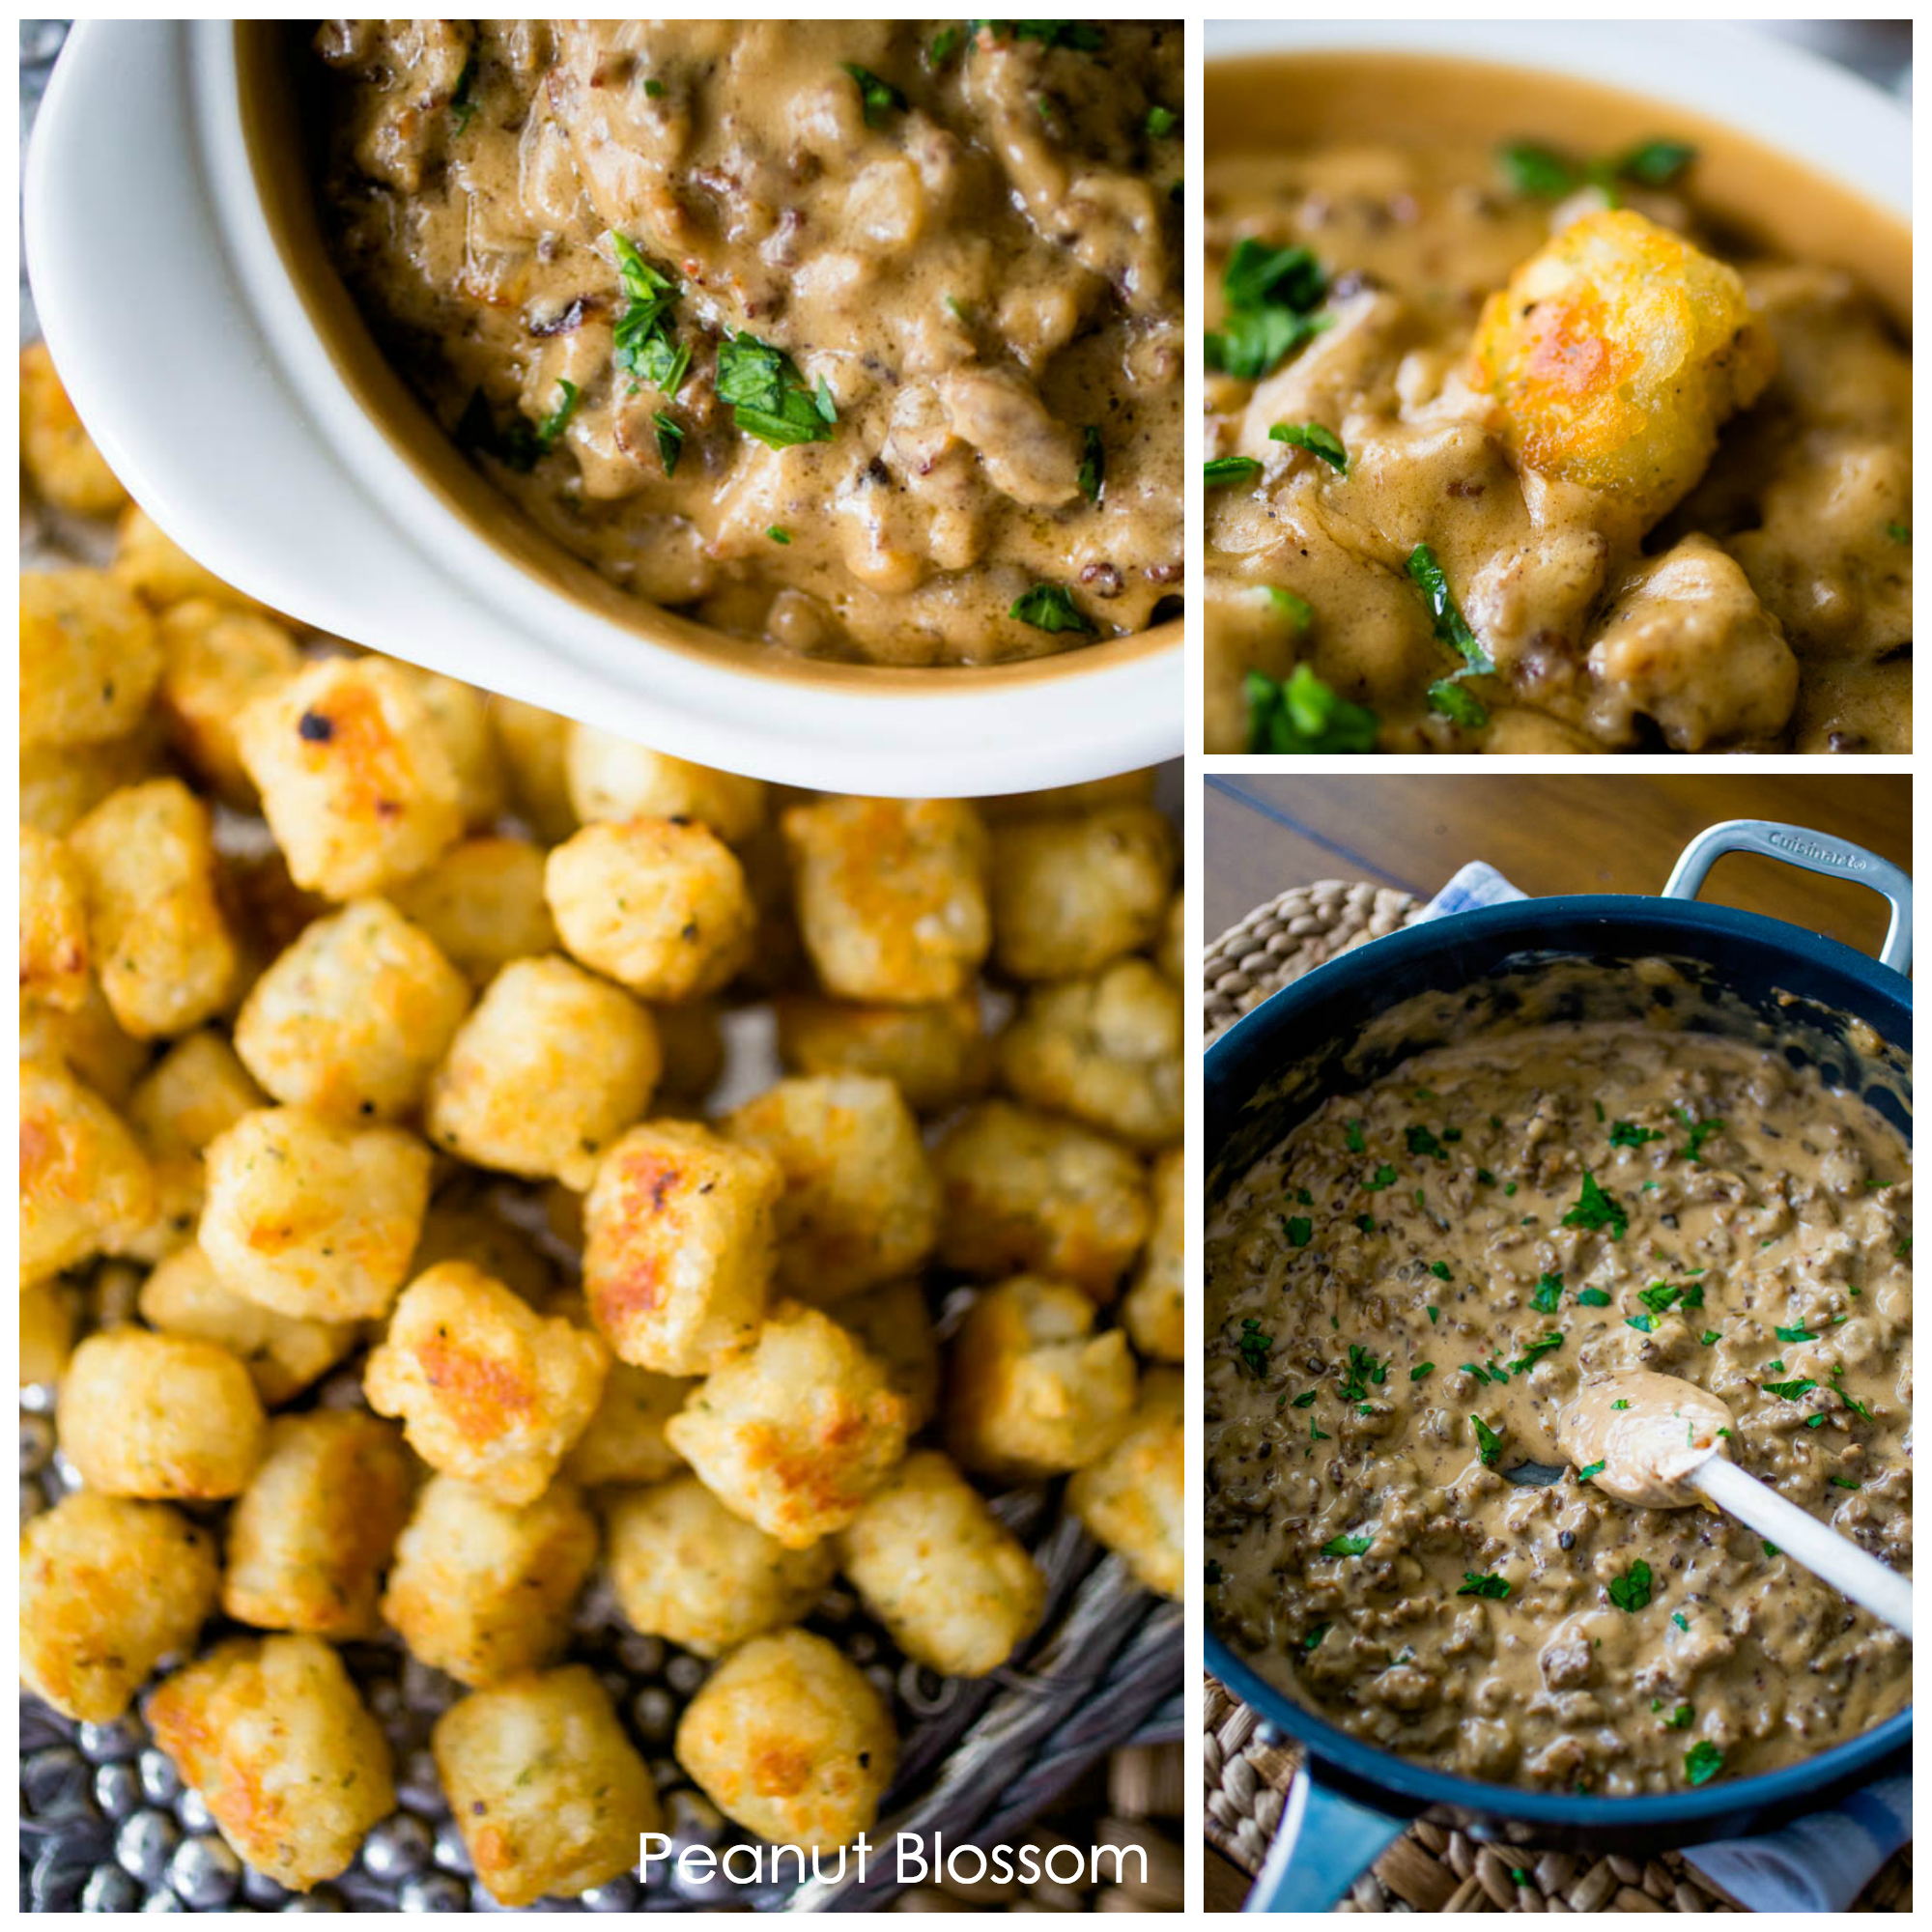 Swedish Meatball Dip with tater tot dunkers